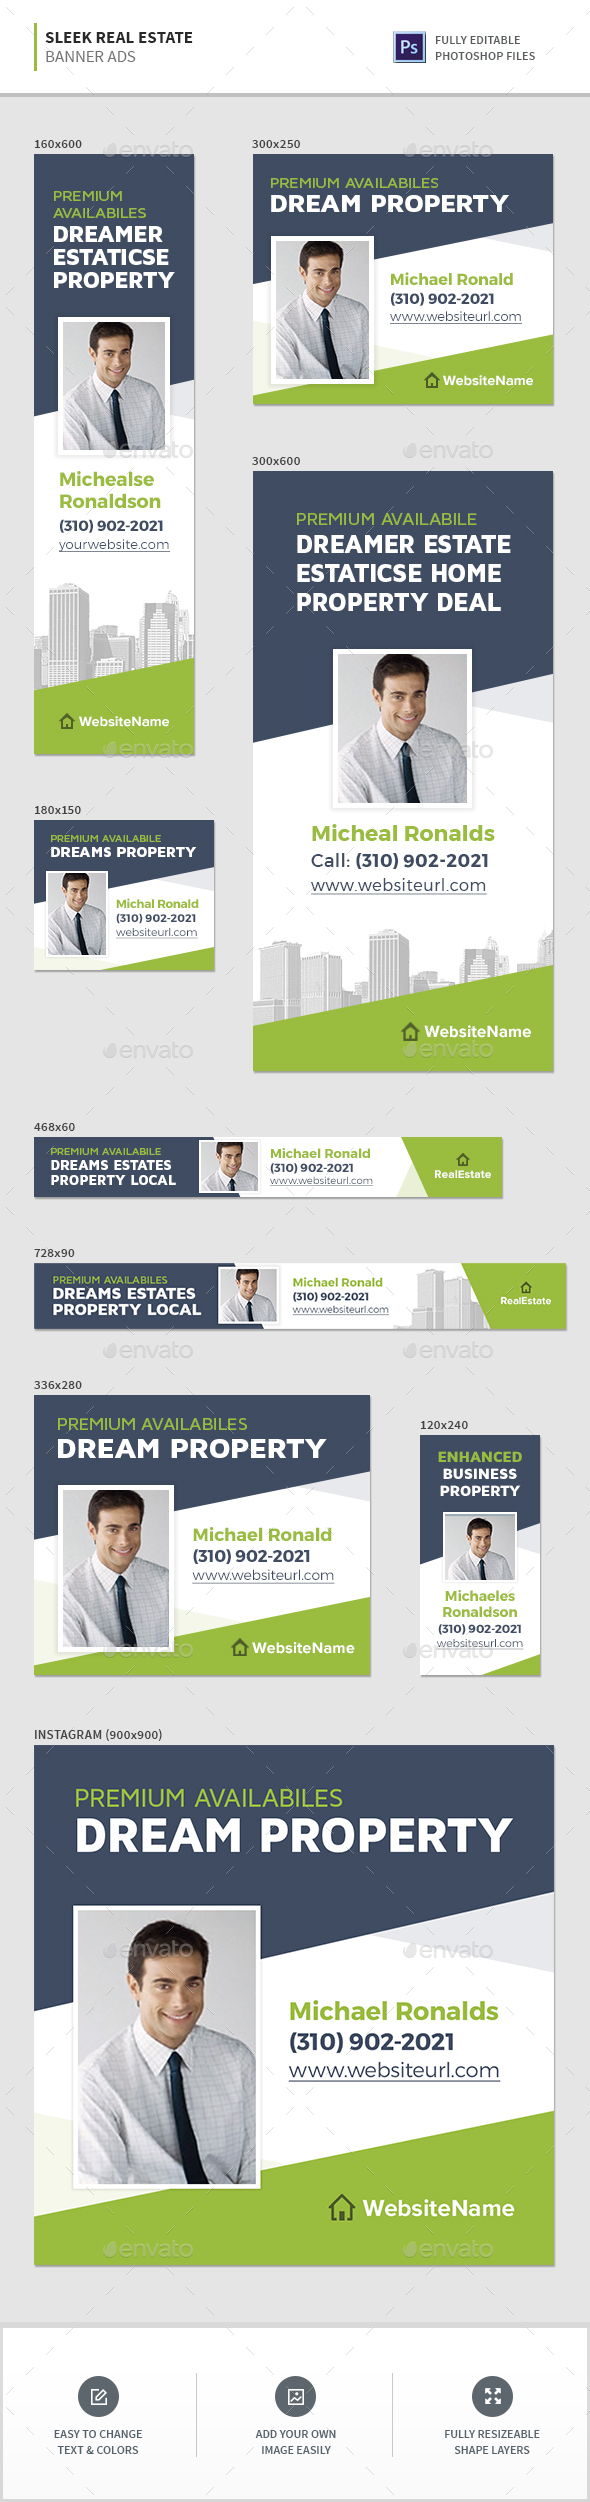 Sleek Real Estate Banners - Banners & Ads Web Elements